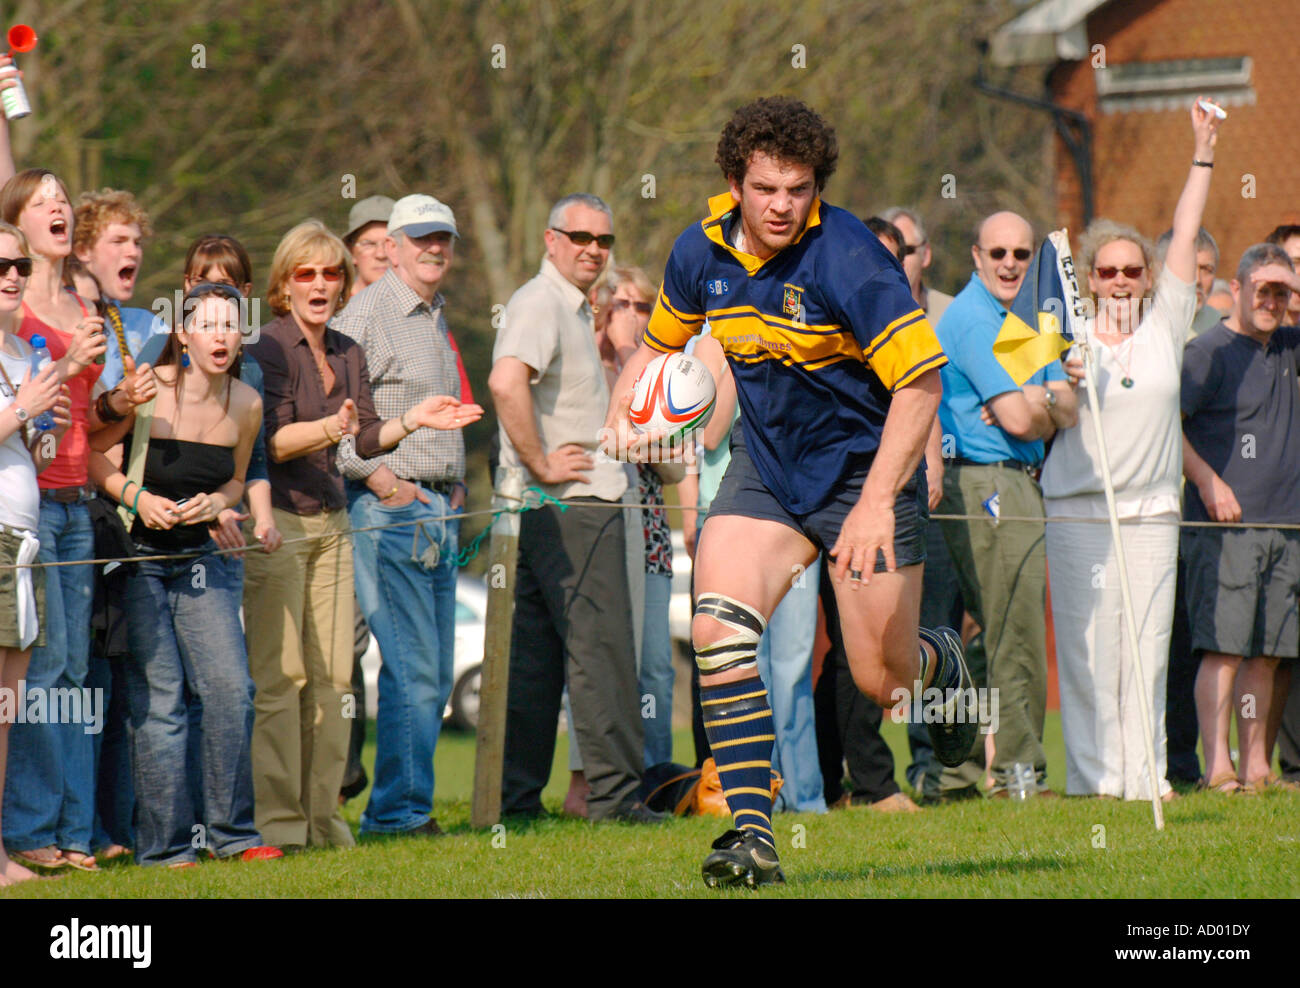 The crowd cheers as an Eastbourne rugby player is close to scoring a try. Picture by Jim Holden. - Stock Image